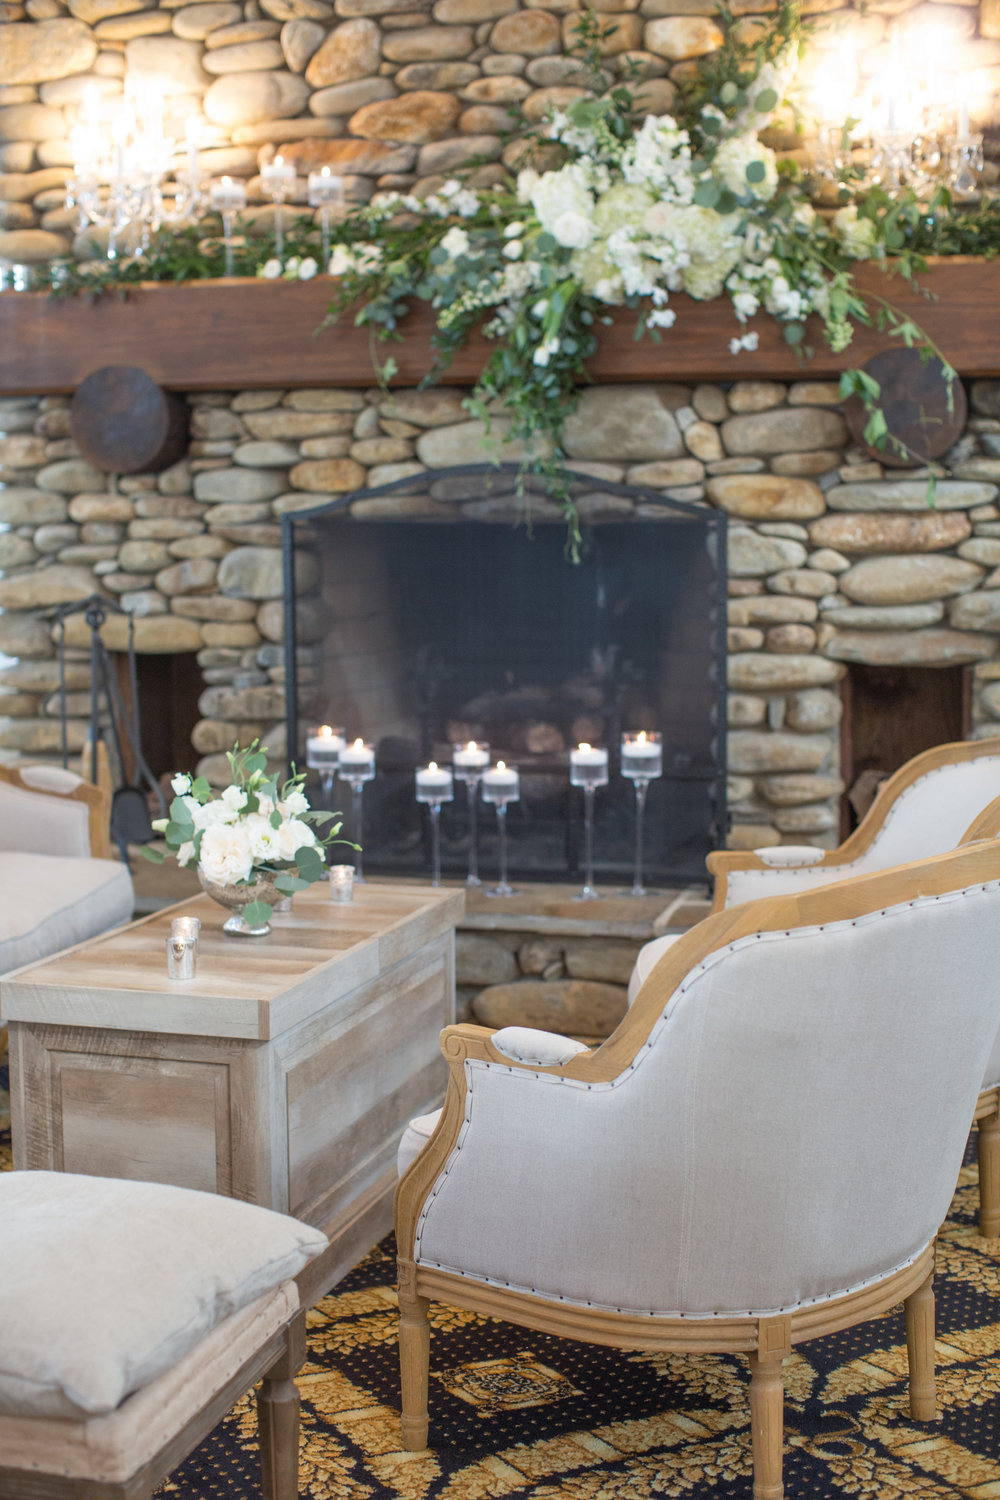 Charlotte North Carolina Wedding, Trump National Golf Course Wedding, Lakeside wedding, Blush Ivory and Greenery Wedding Design, The Graceful Host, Classic Wedding, Wedding Centerpiece, Wedding Flowers, Fireplace Mantle Flowers, Fireplace Centerpiece, Wedding Lounge Furniture, Upholstered Lounge Furniture, Elegant Wedding Ideas